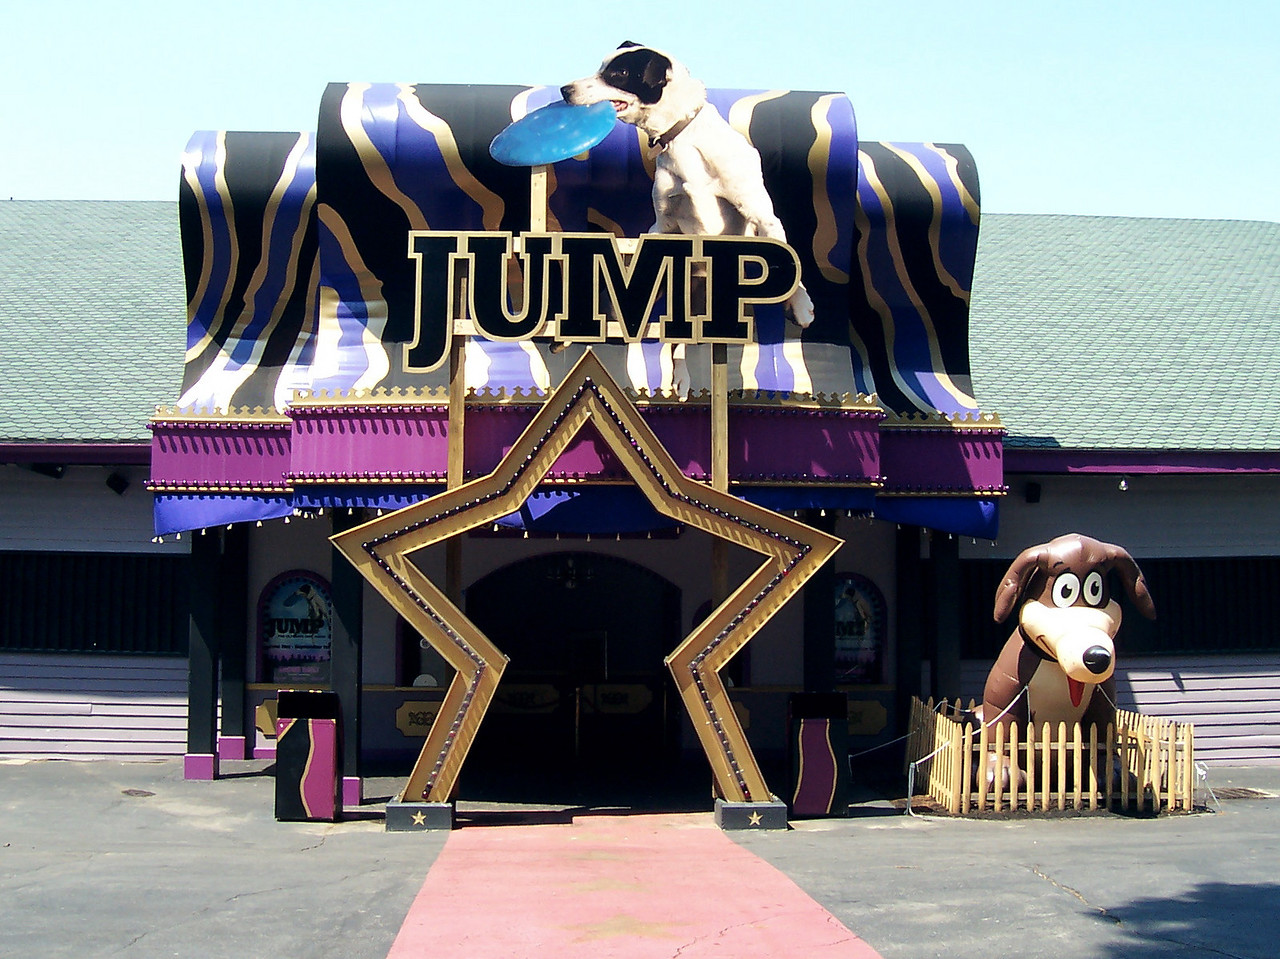 The Dancehall Theatre was themed for the Jump! stunt dog show.